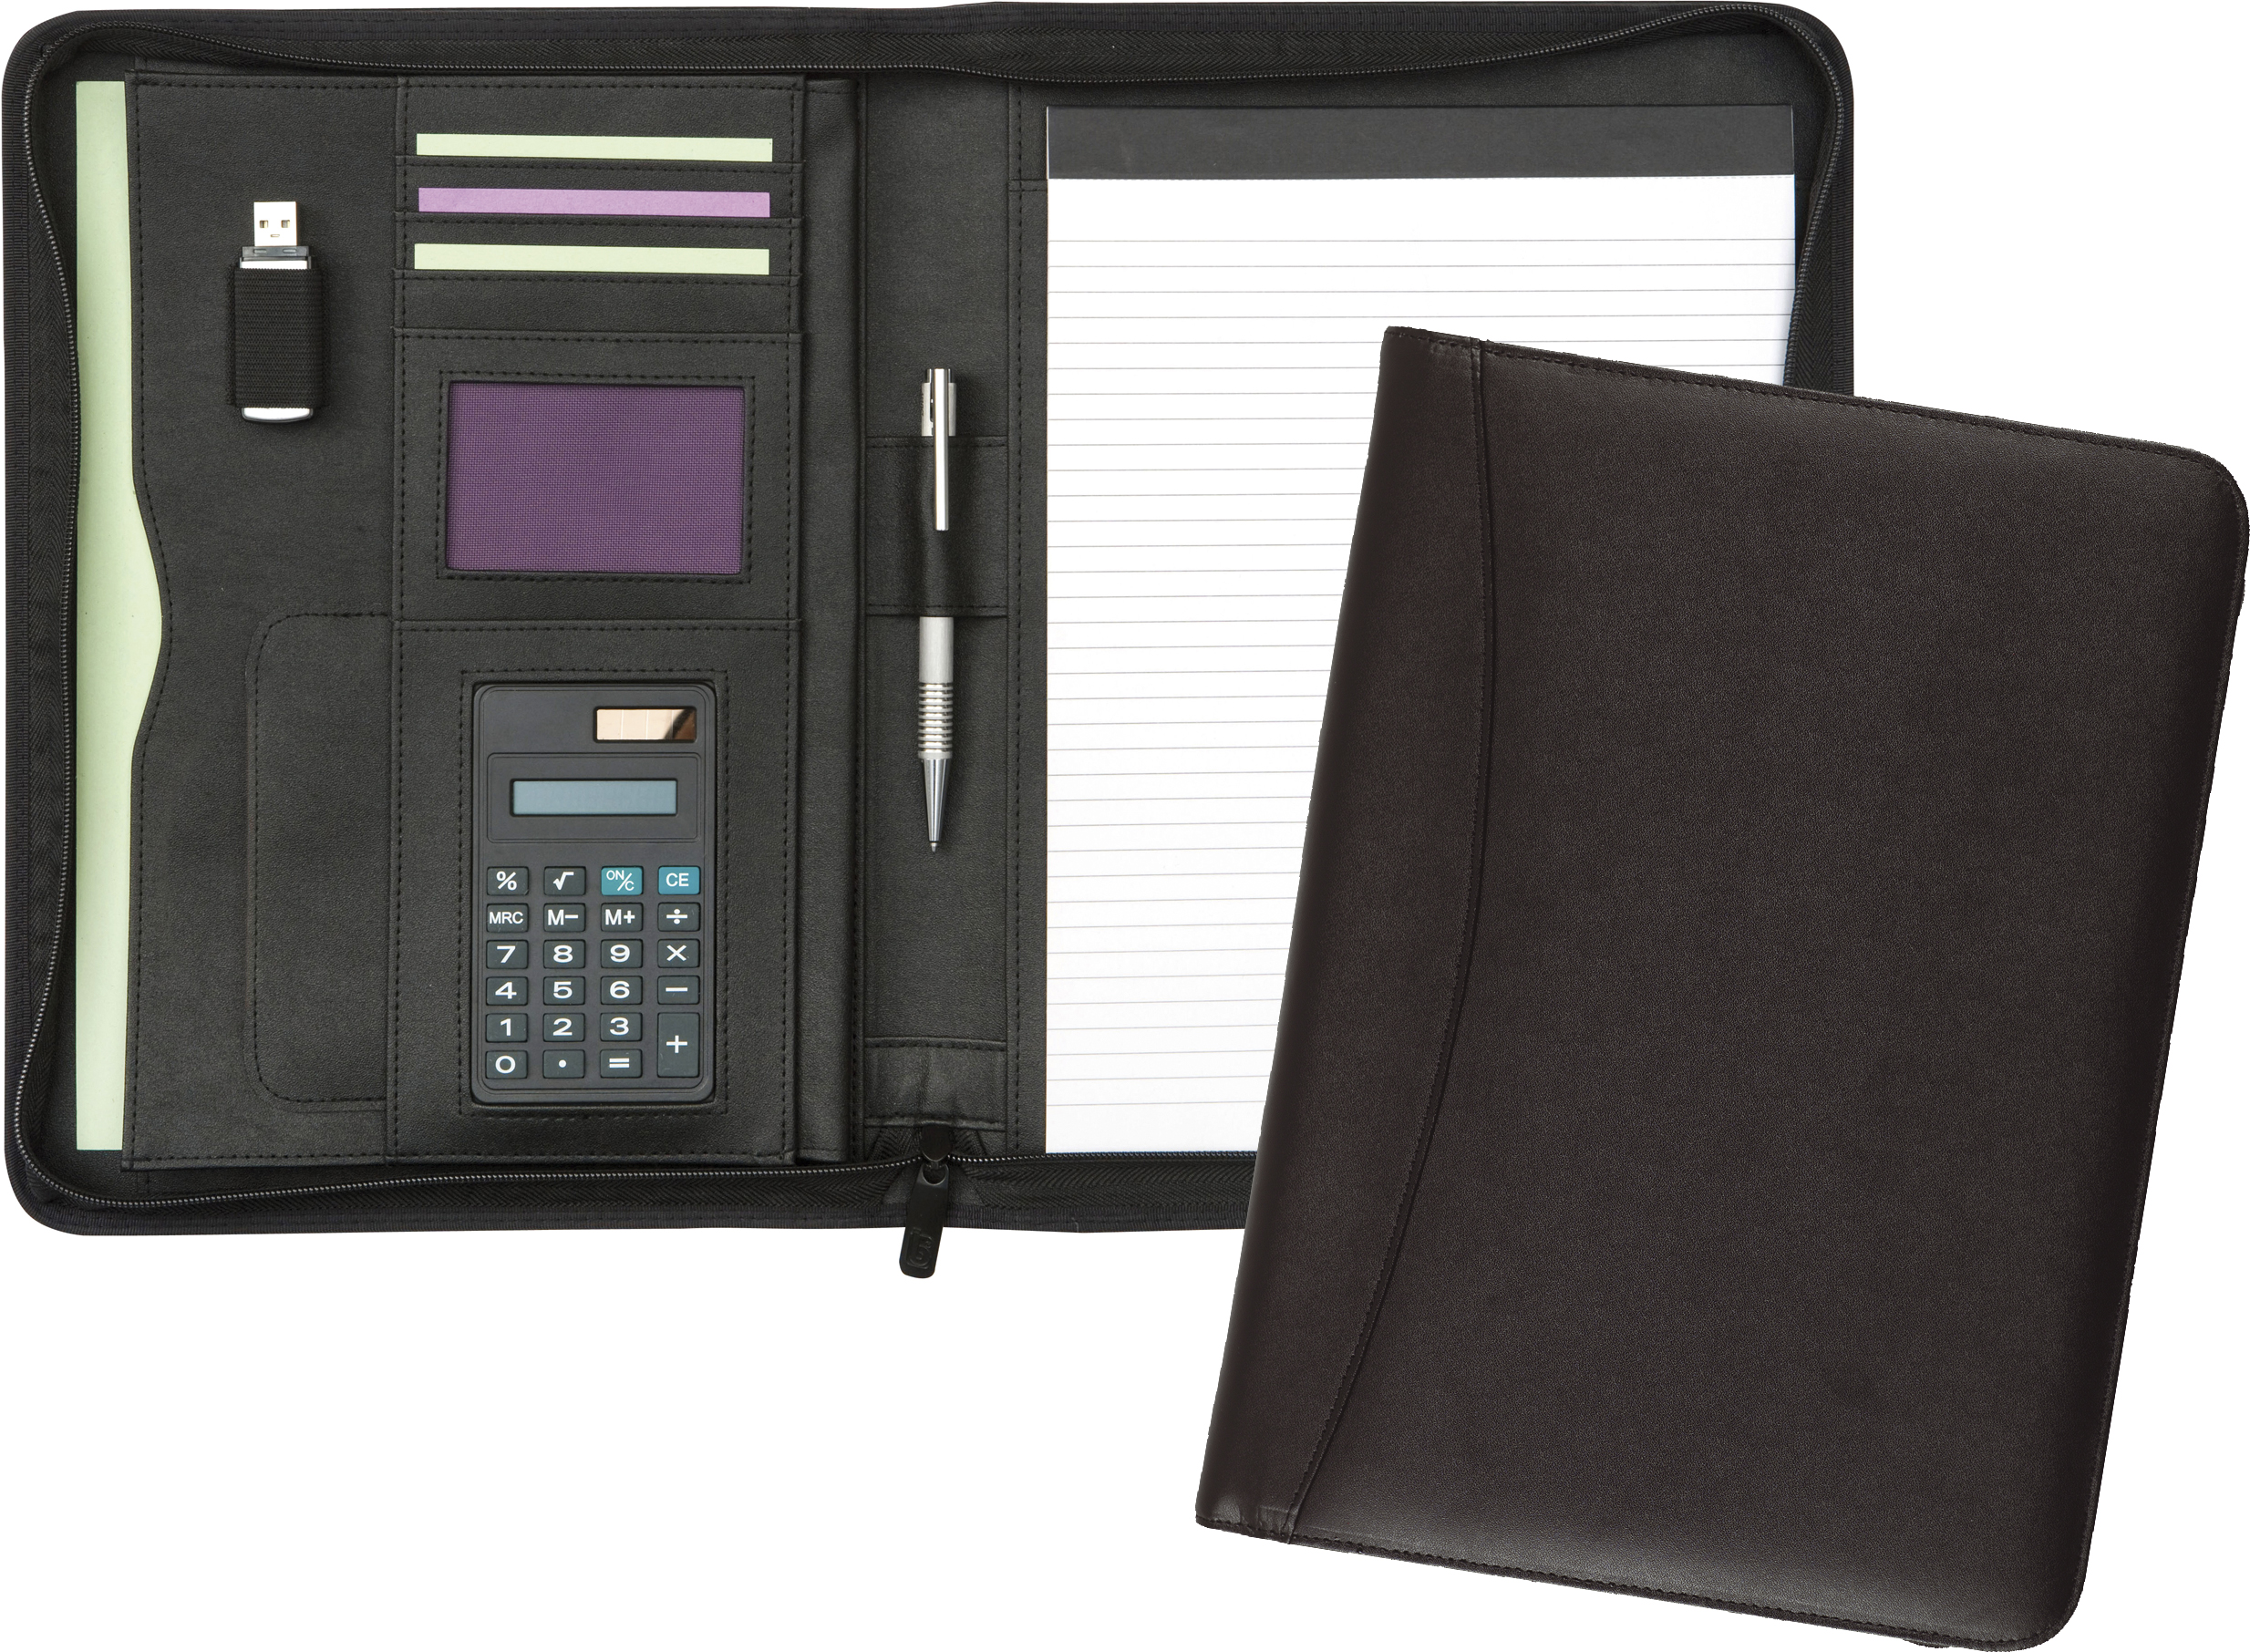 Promotional Chiddingstone Calcufolder